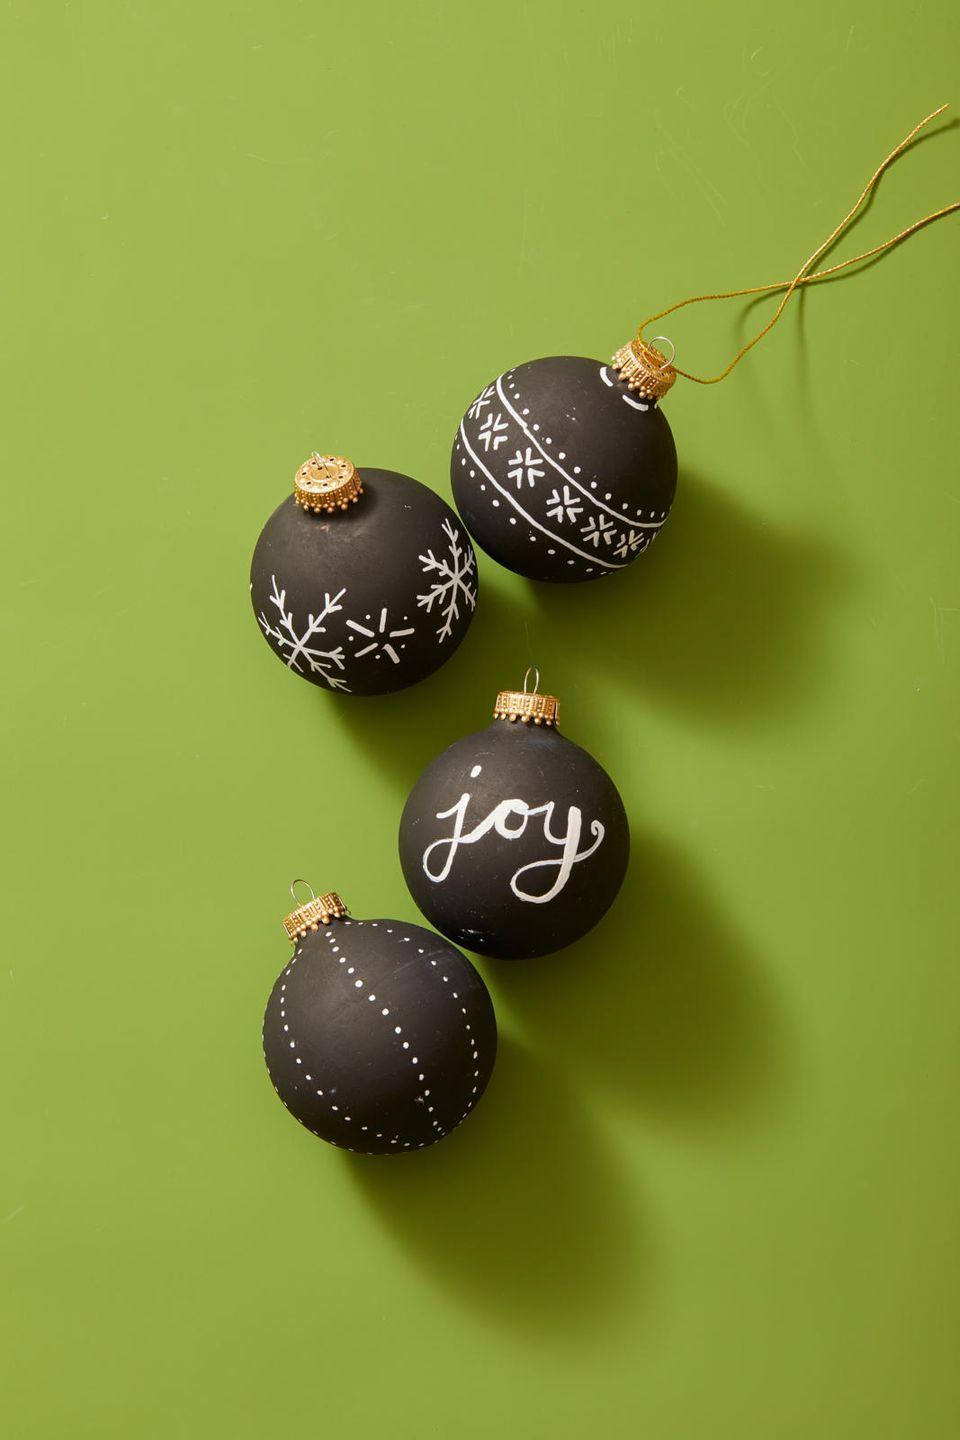 """<p>Custom-make your own ornaments by painting them with <a href=""""https://www.amazon.com/Chalkboard-American-Crafts-ounces-366867/dp/B00I99S3BC/?tag=syn-yahoo-20&ascsubtag=%5Bartid%7C10055.g.2996%5Bsrc%7Cyahoo-us"""" rel=""""nofollow noopener"""" target=""""_blank"""" data-ylk=""""slk:chalk paint"""" class=""""link rapid-noclick-resp"""">chalk paint</a>, then writing on them with a <a href=""""https://www.amazon.com/Sanford-35558-Sharpie-Oil-Based-1-Count/dp/B001PLKRZQ?tag=syn-yahoo-20&ascsubtag=%5Bartid%7C10055.g.2996%5Bsrc%7Cyahoo-us"""" rel=""""nofollow noopener"""" target=""""_blank"""" data-ylk=""""slk:white paint pen"""" class=""""link rapid-noclick-resp"""">white paint pen</a>. You can doodle on a holiday design, or personalize them with your names and special dates (birthdays, anniversaries, and so on). </p><p><strong>RELATED: </strong><a href=""""https://www.goodhousekeeping.com/holidays/christmas-ideas/g393/homemade-christmas-ornaments/"""" rel=""""nofollow noopener"""" target=""""_blank"""" data-ylk=""""slk:Homemade Christmas Ornaments to Easily Personalize Your Tree"""" class=""""link rapid-noclick-resp"""">Homemade Christmas Ornaments to Easily Personalize Your Tree</a></p>"""